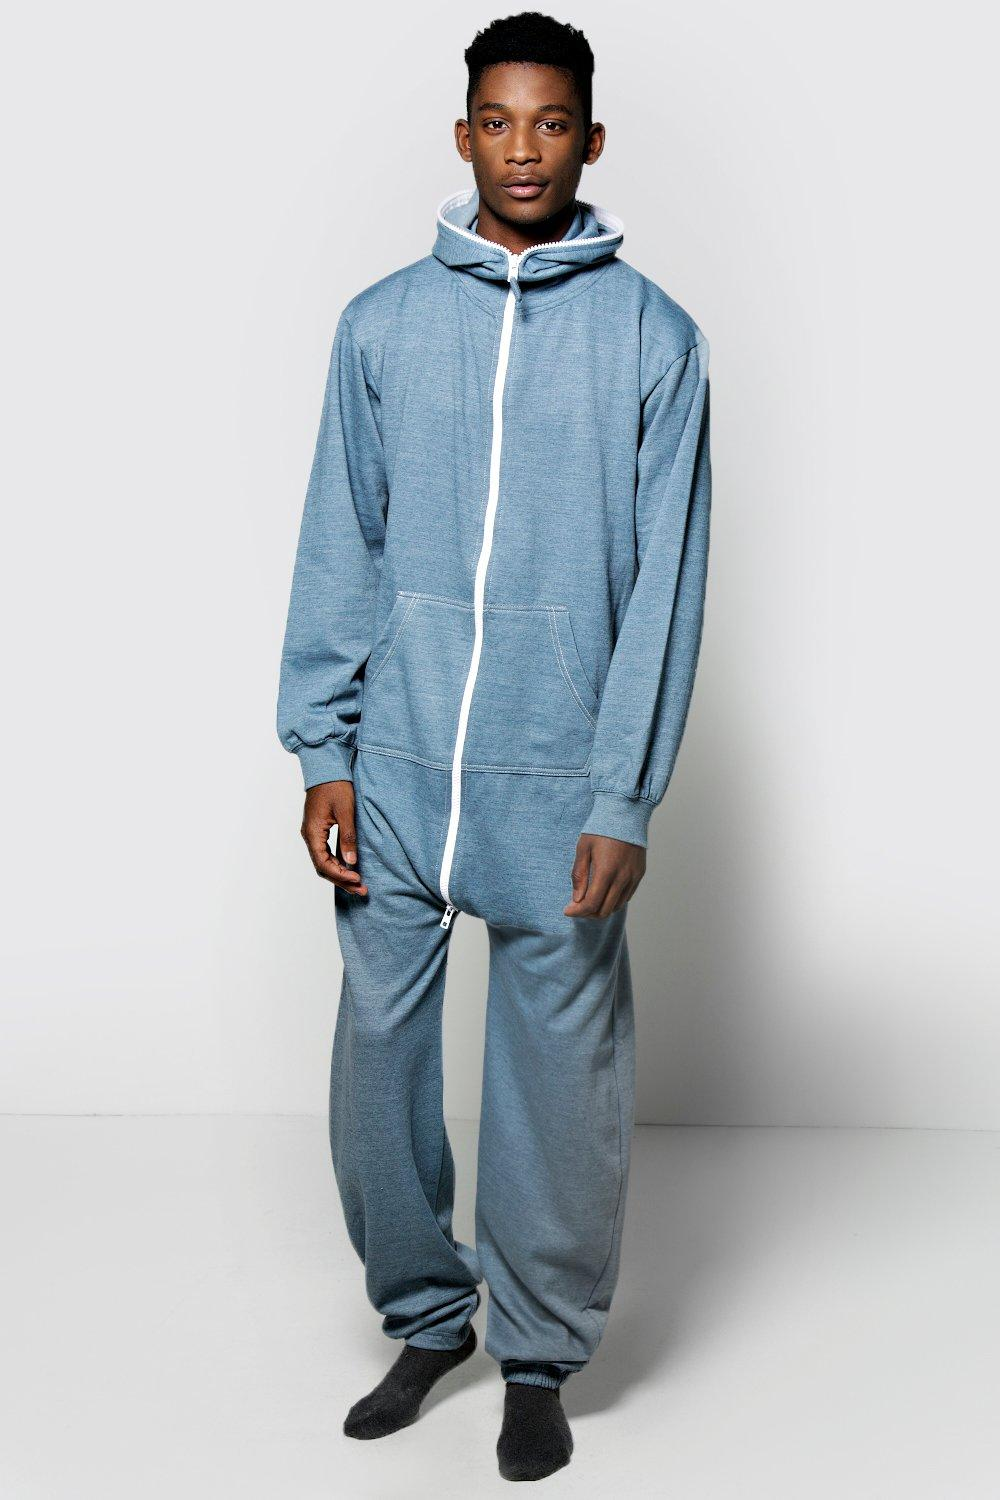 Stay warm and stylish with a men's onesie. The boohoo Man collection is sure to please you with animal onesies and onesies with hoods. By continuing to use our site you agree to us using Plain Fleece Lounge Pants $ $ Black Marl Onesie $ $